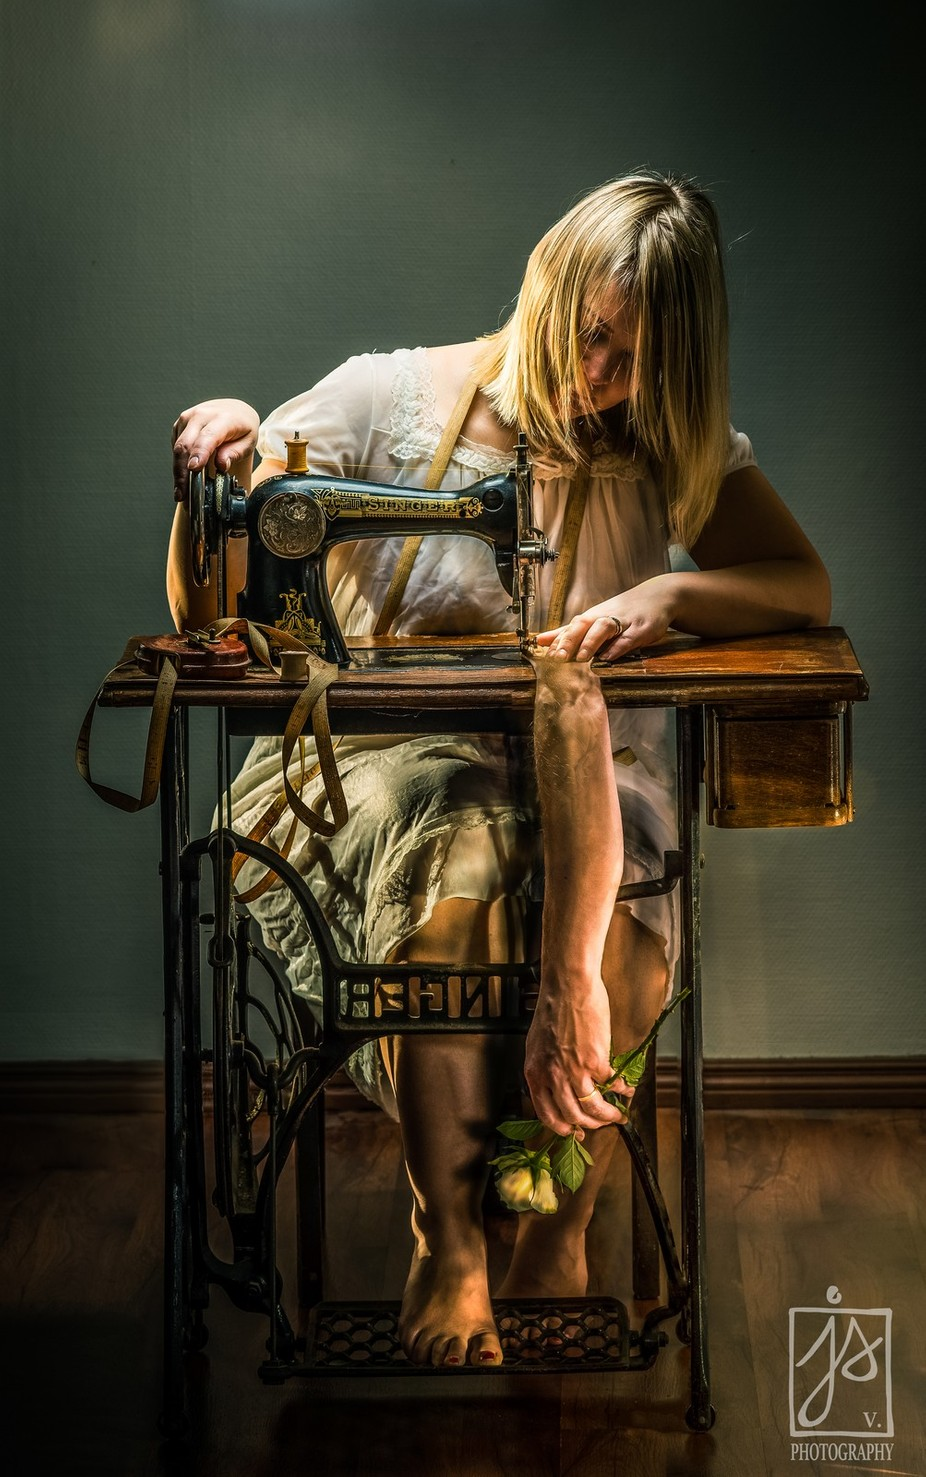 Sewing Her Dream by juhamattivahdersalo - The Magic Of Editing Photo Contest